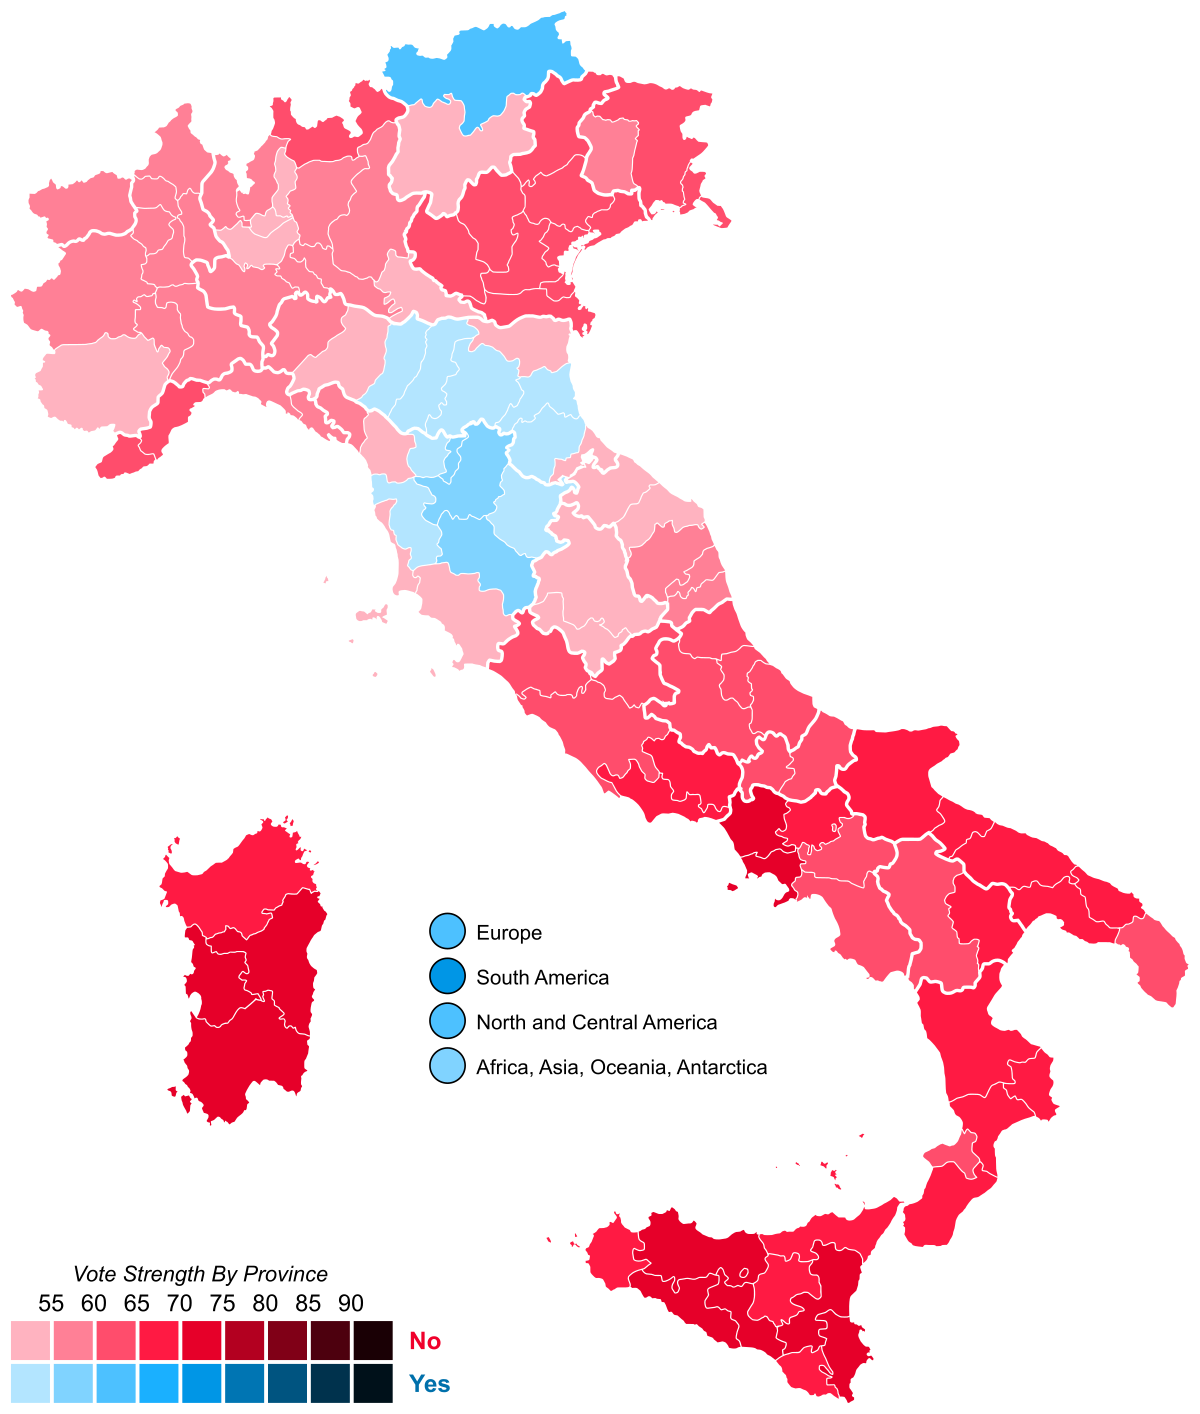 Italy will hold the constitutional referendum on the same day as the regional ones on September 20 and 21